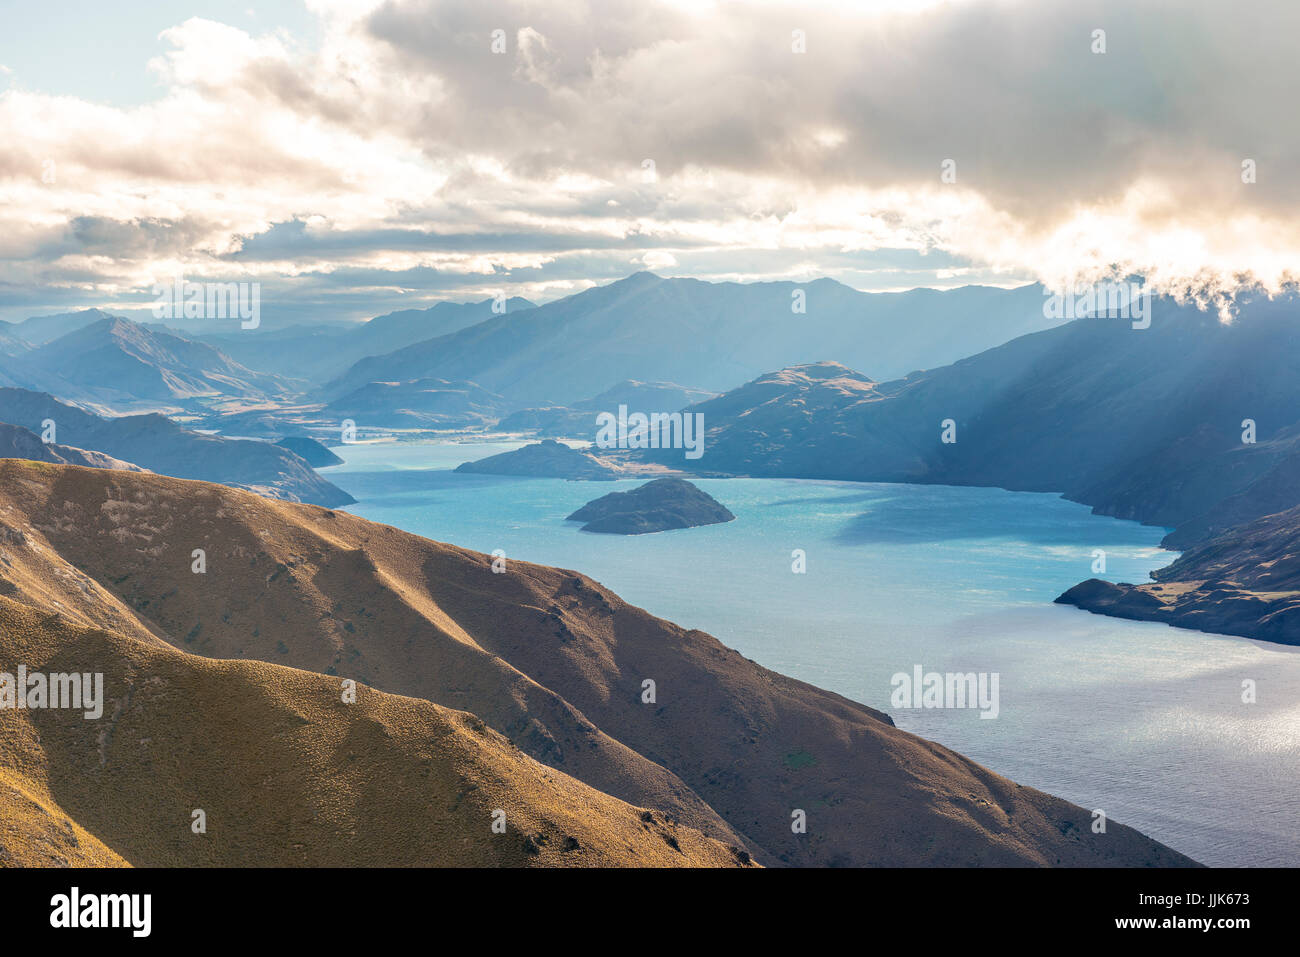 Lake Wanaka and mountain panorama, view from the Isthmus Peak Track, Otago, South Island, New Zealand, Oceania - Stock Image